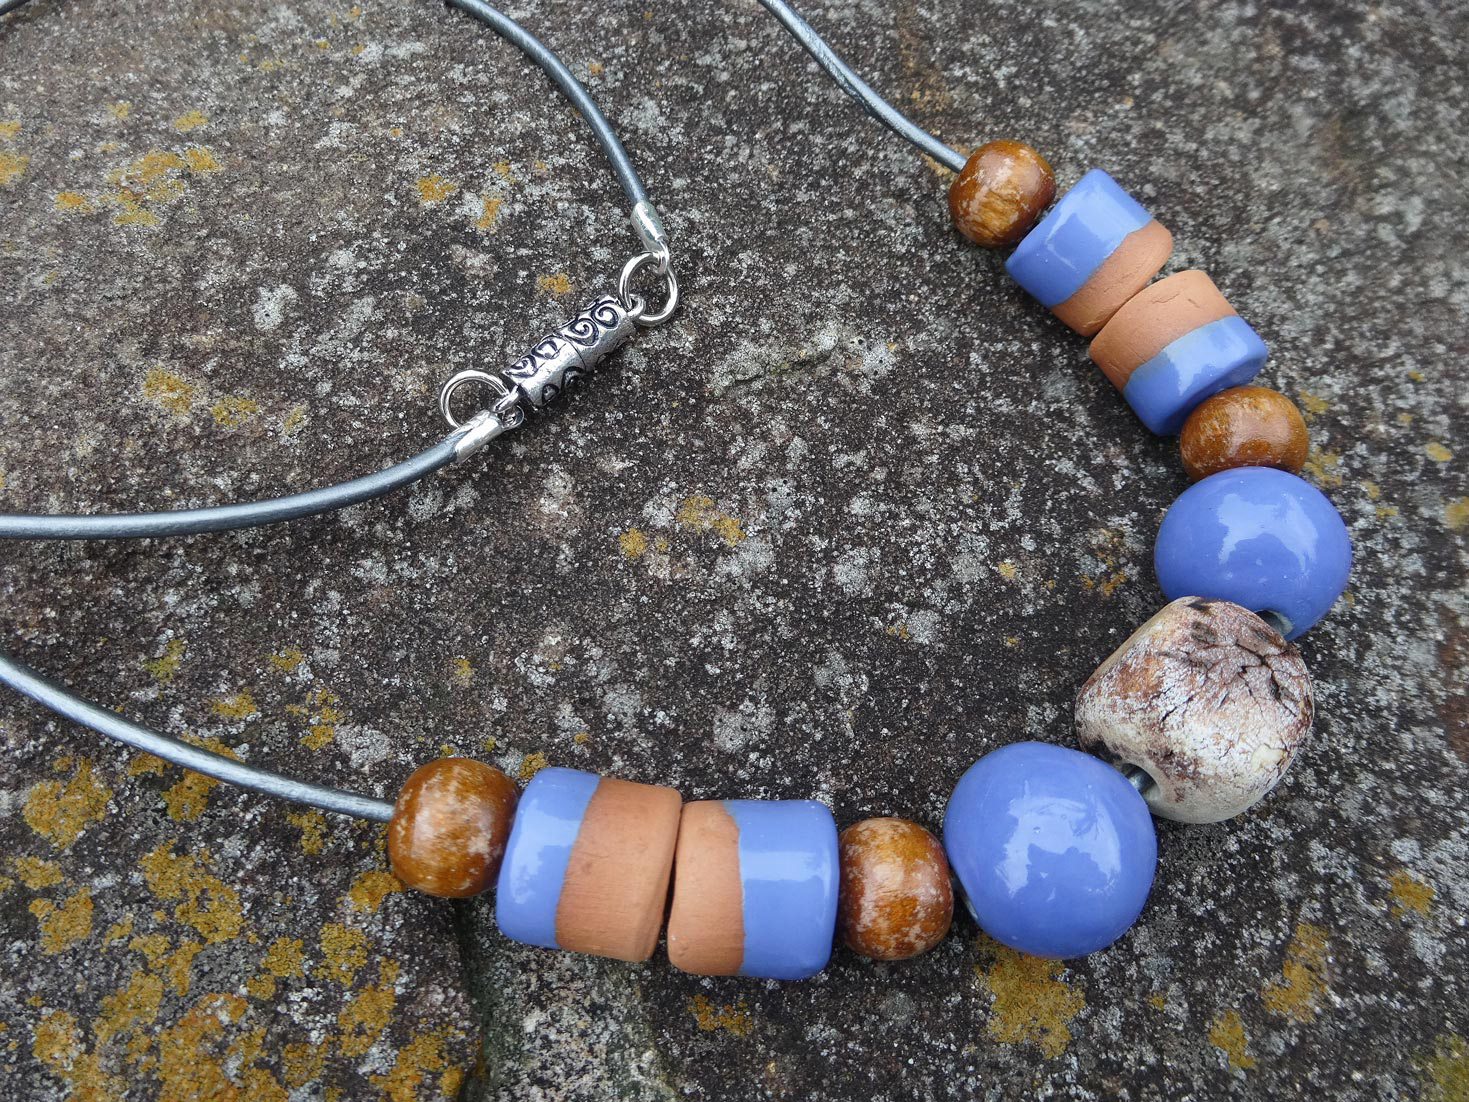 A Silkyecho Pottery necklace of unique ceramic beads in a combination of glaze and organic finishes